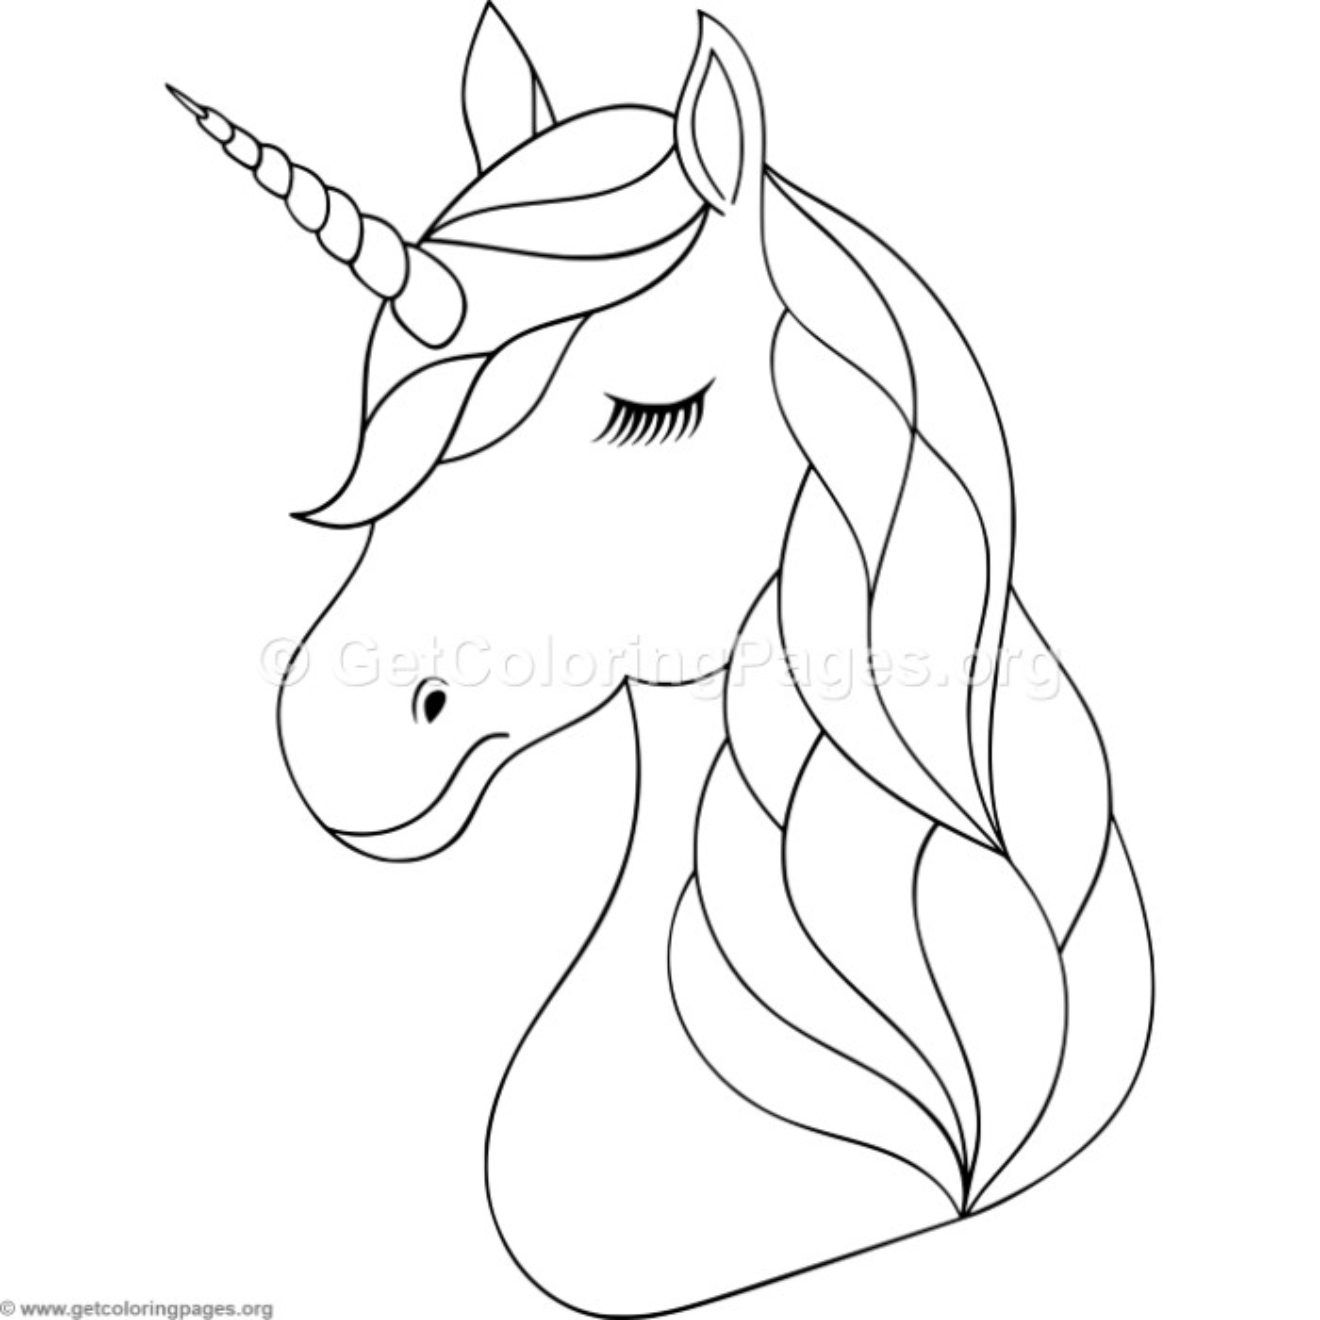 Unicorn Head Coloring Pages Getcoloringpages Org Figuras De